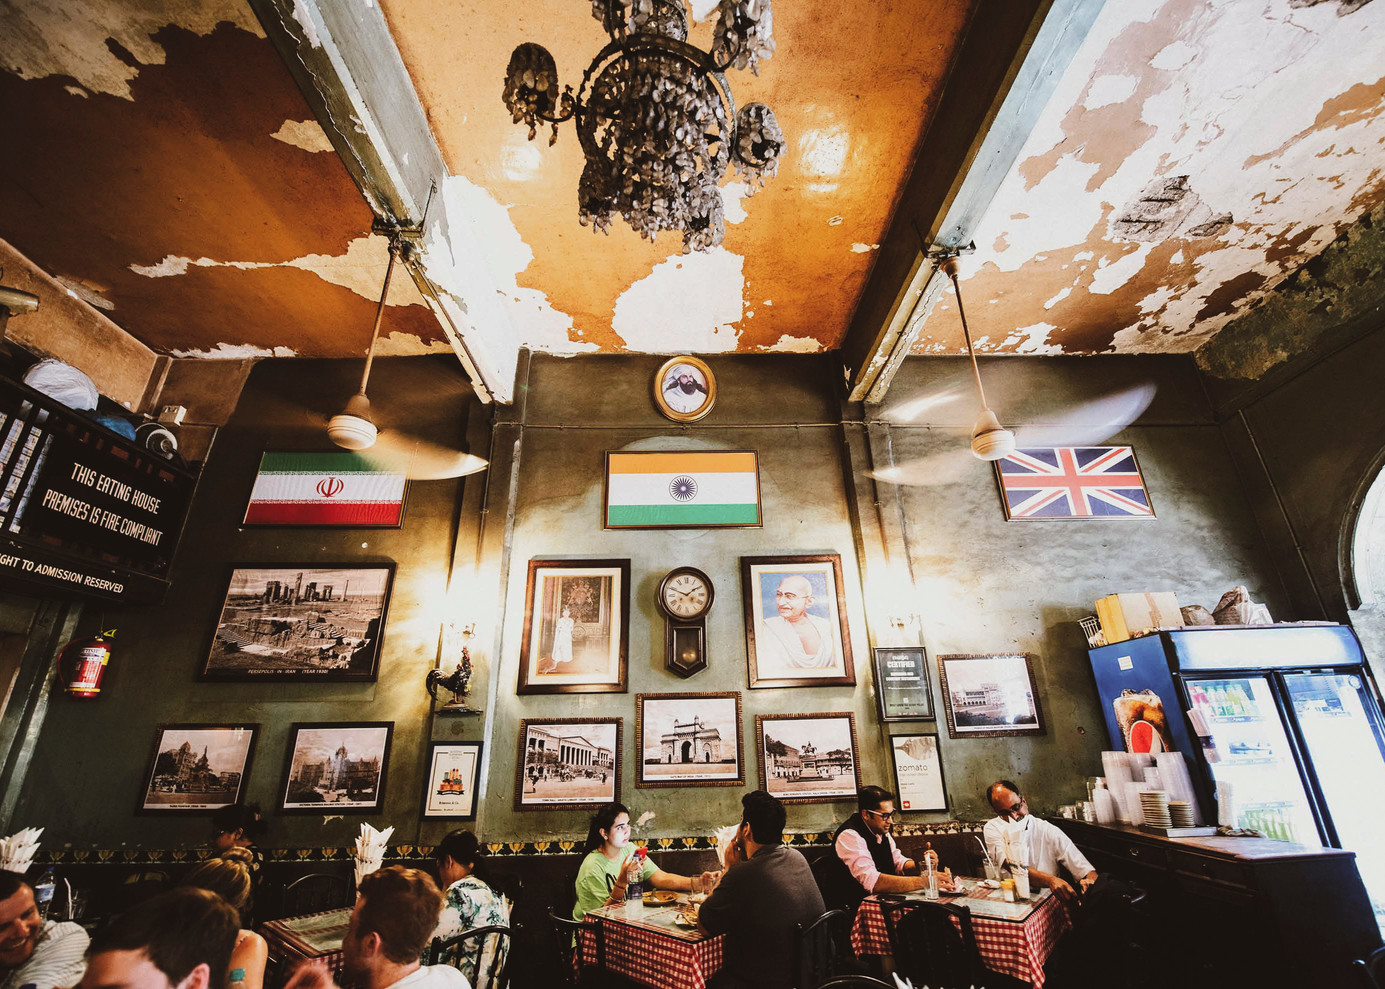 Flags of India, England and Iran adorn the top of the wall of Britannia & Co. The interior decor of the cafe pays tribute to the three countries. Hence, old images of Bombay and Persopolis (the ancient capital of Persia) find place on the walls along with photographs of Mahatma Gandhi and Queen Elizabeth on either side of a vintage pendulum clock.